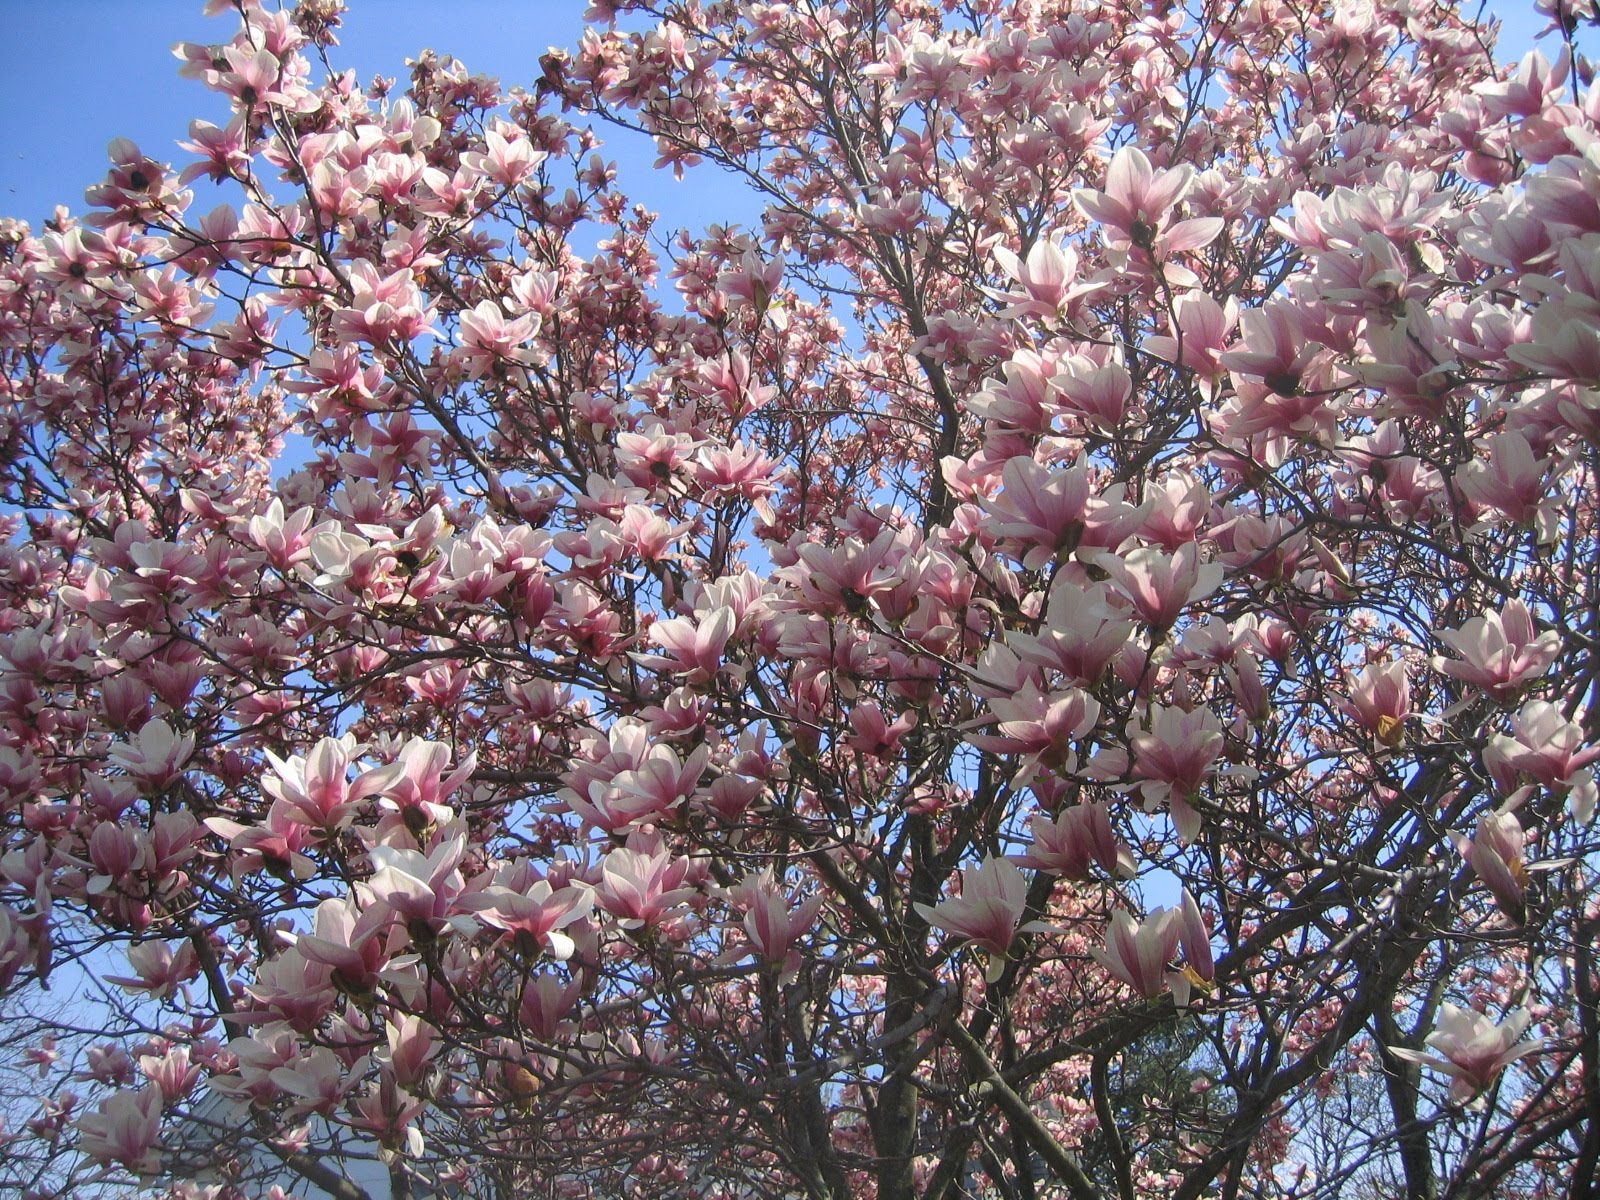 Valley View Farms Plant Of The Week Magnolia X Soulangiana